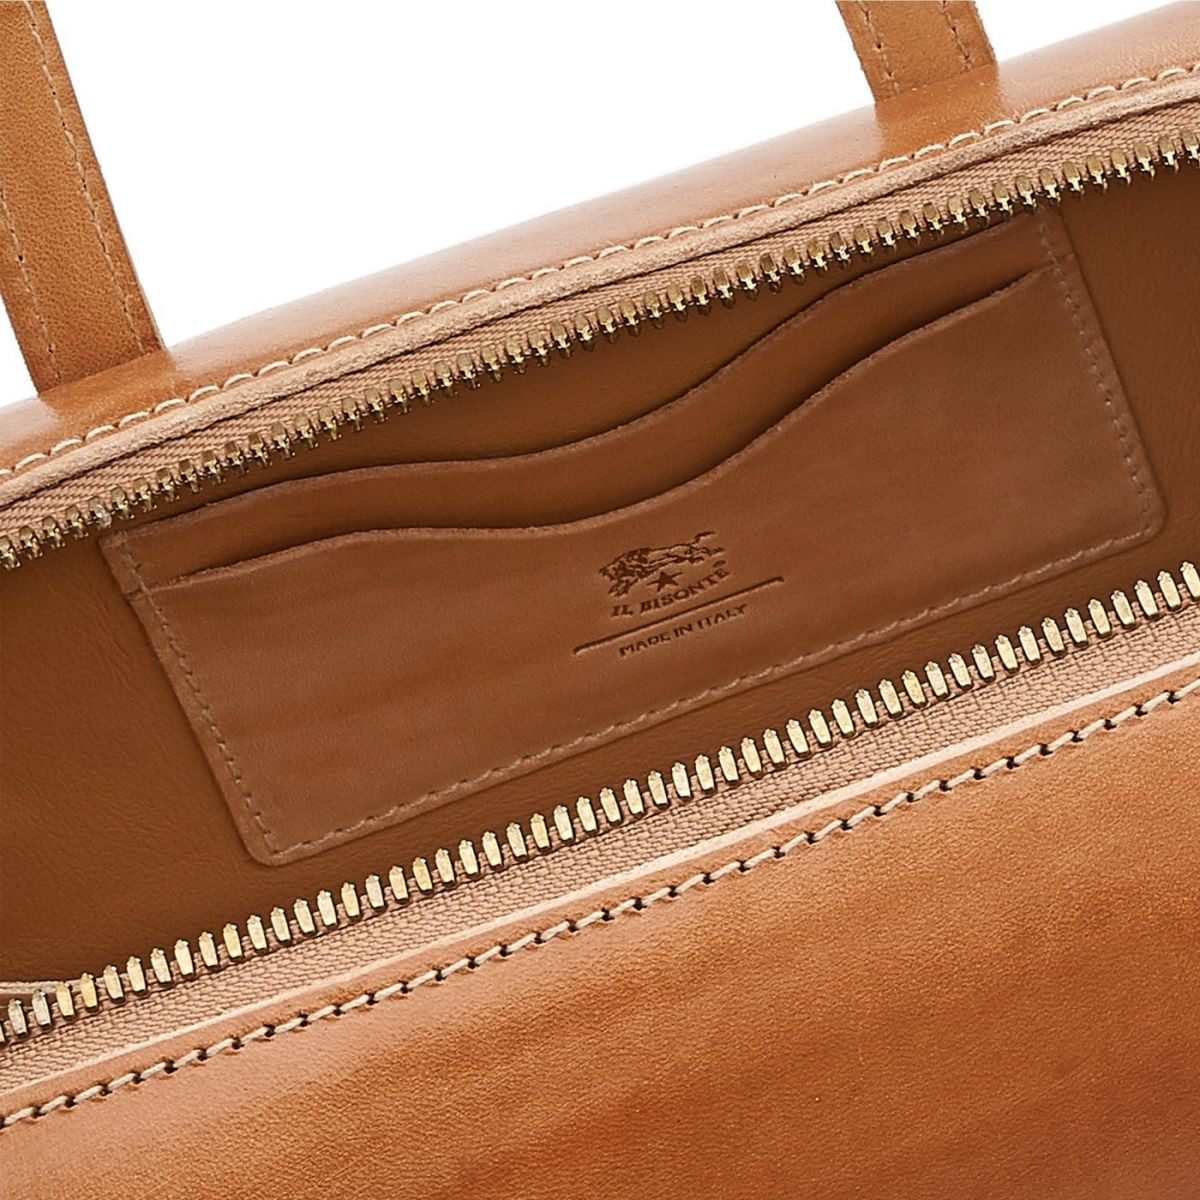 Women's Handbag  in Leather BTH102 color Natural | Details